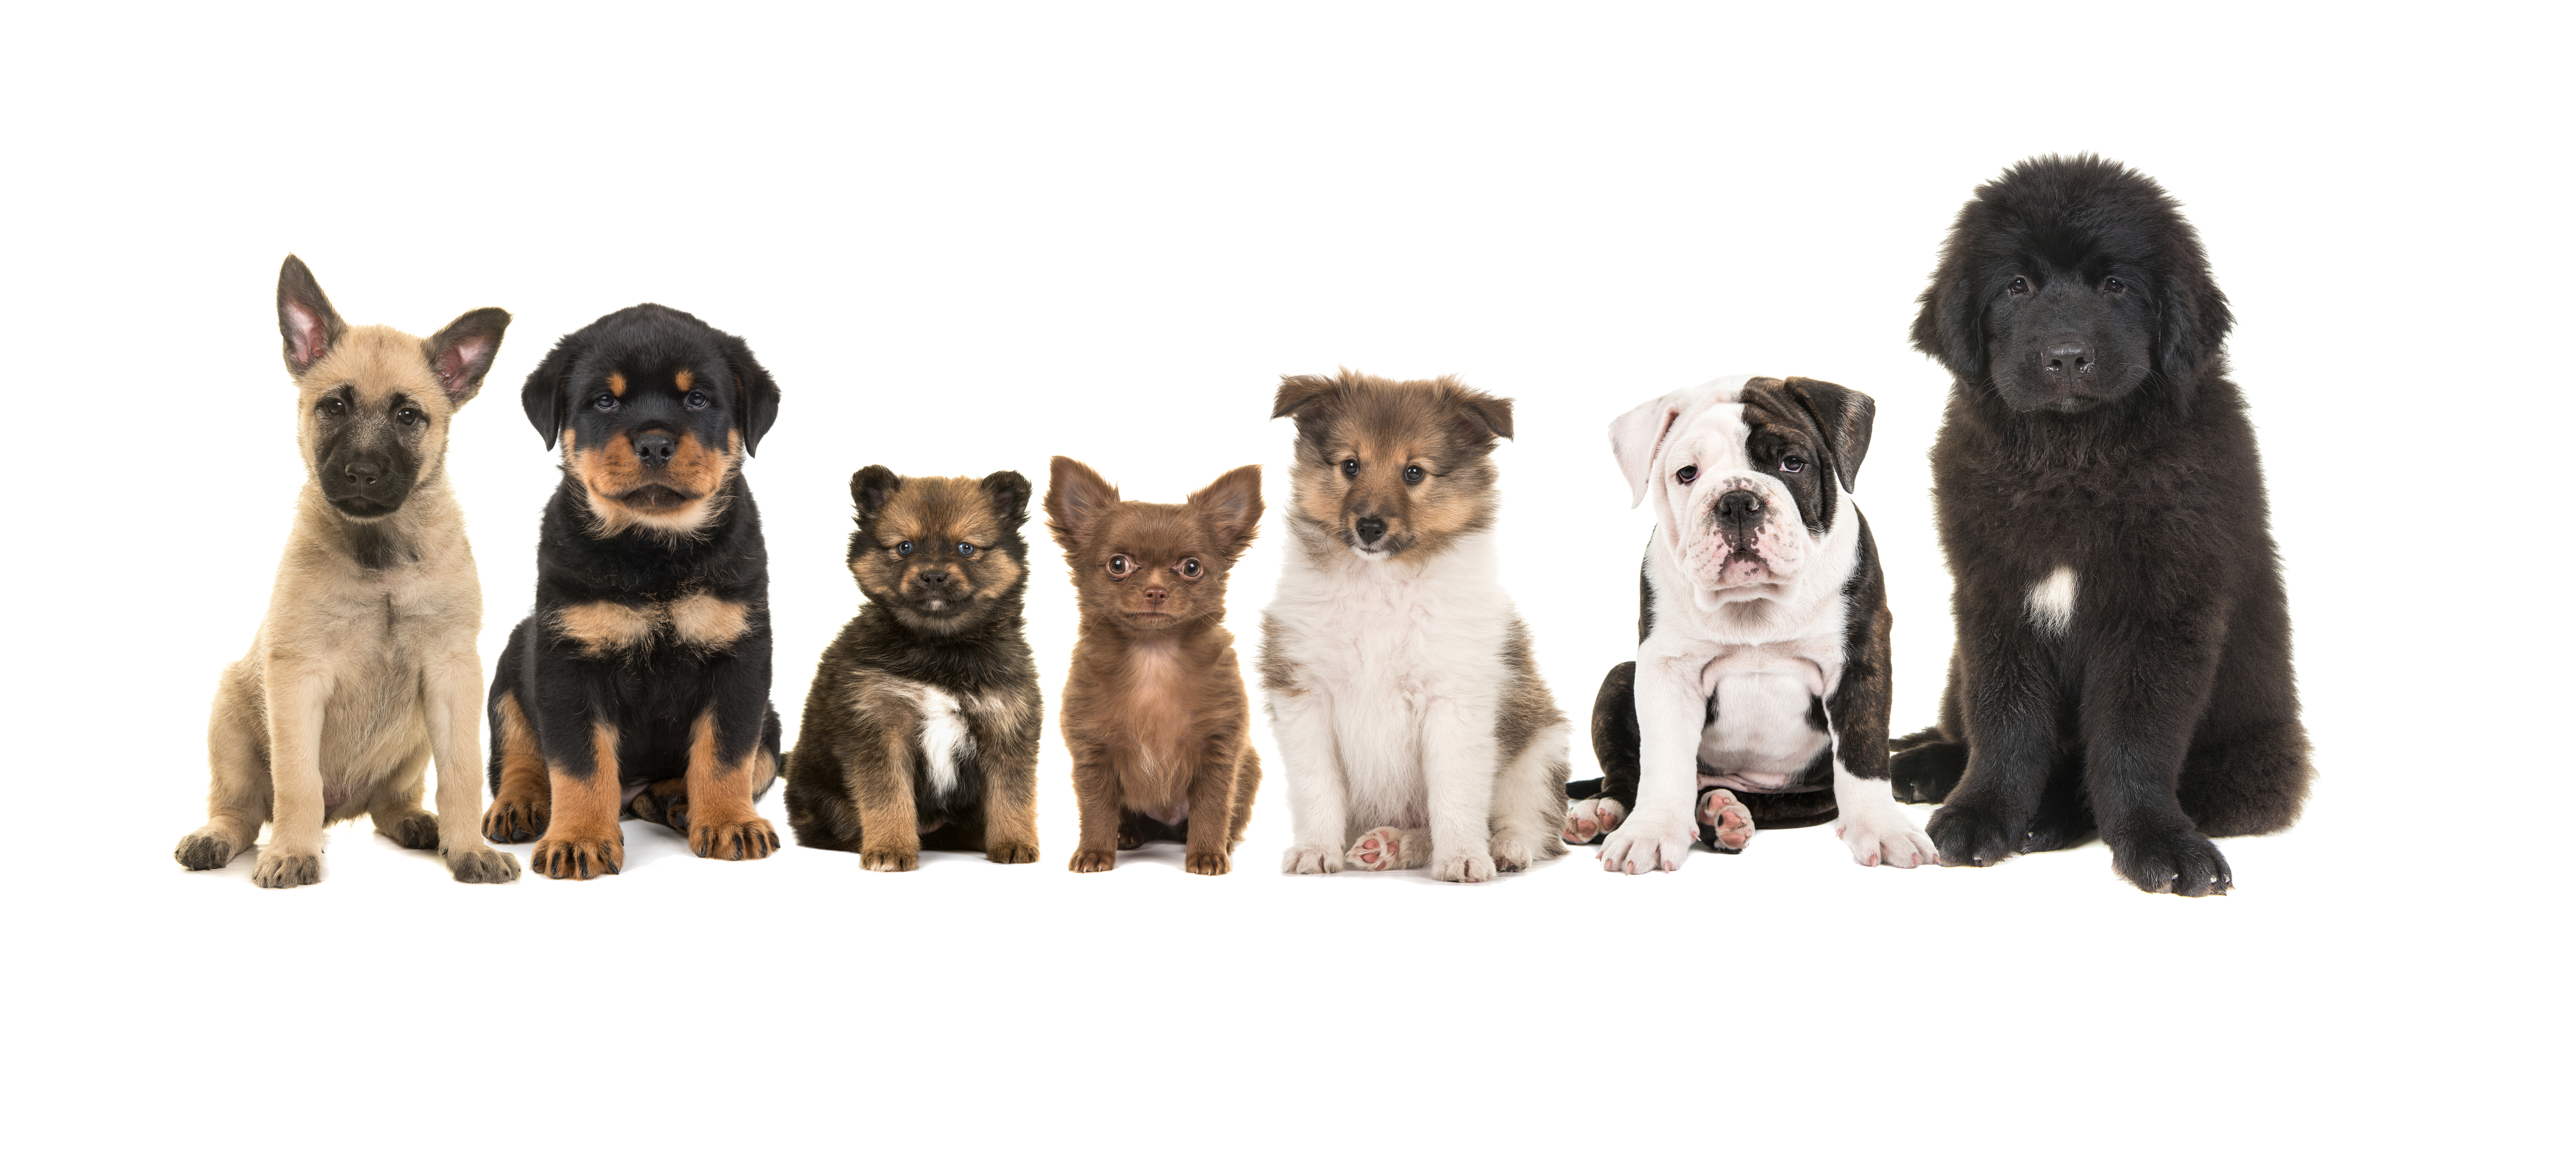 Seven different breeds of puppies.